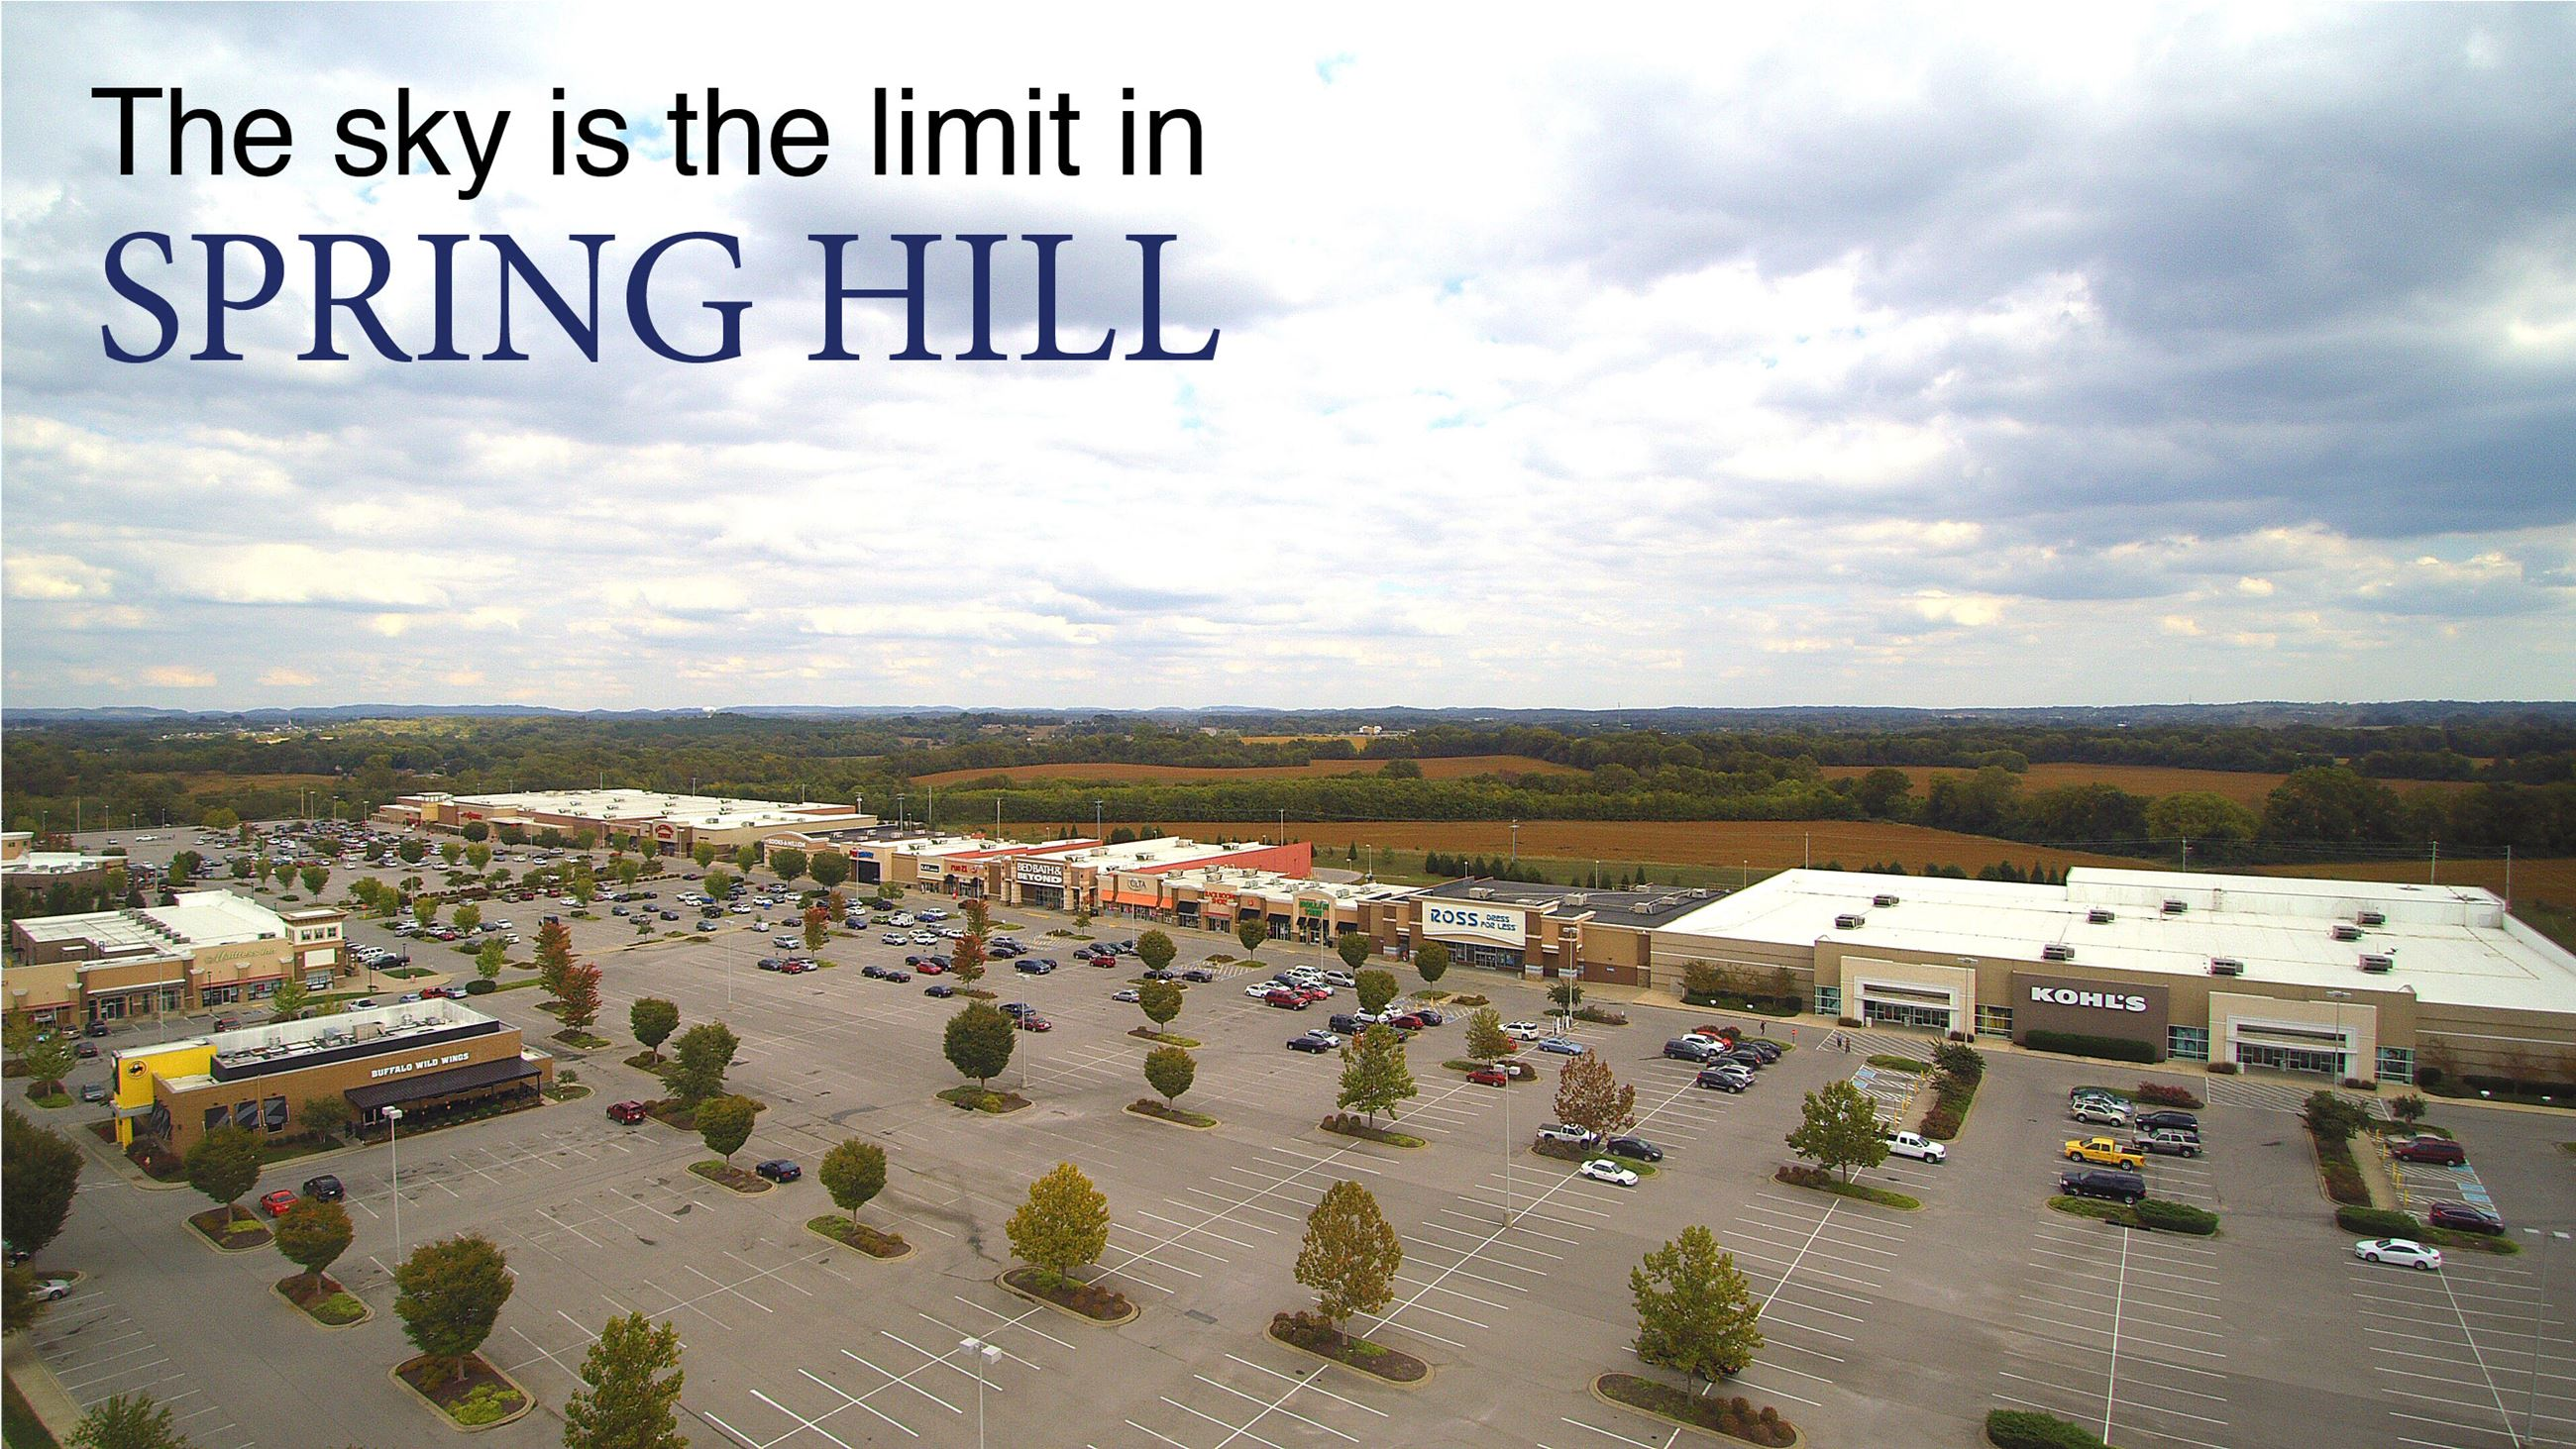 Photo of commerce in Spring Hill, reading, 'The sky is the limit in Spring Hill'